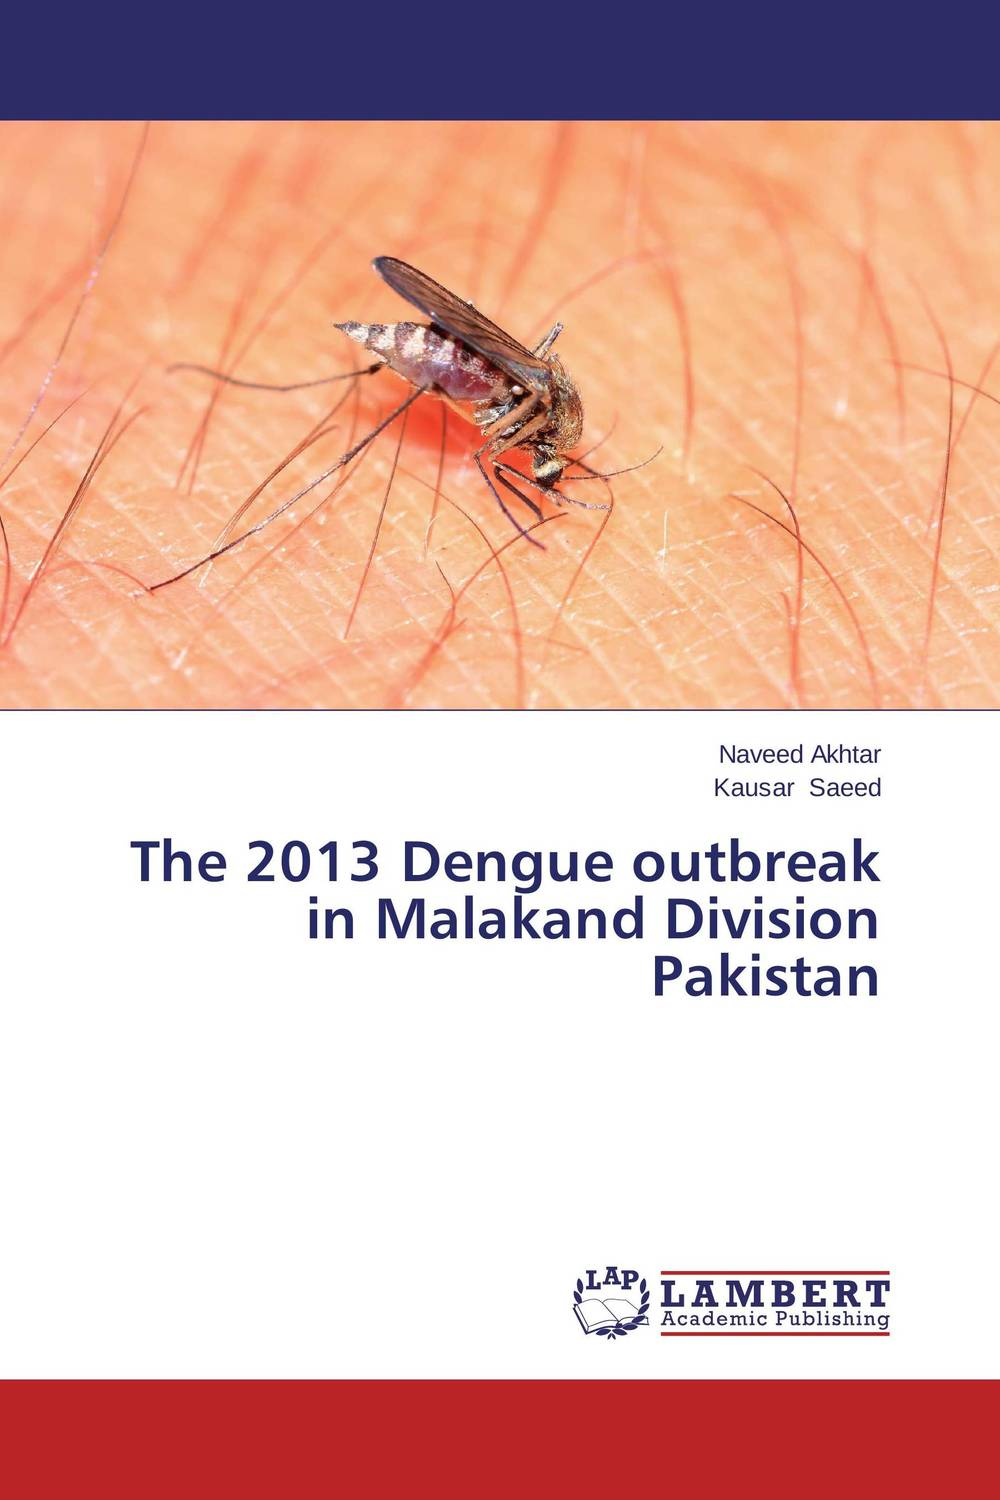 The 2013 Dengue outbreak in Malakand Division Pakistan